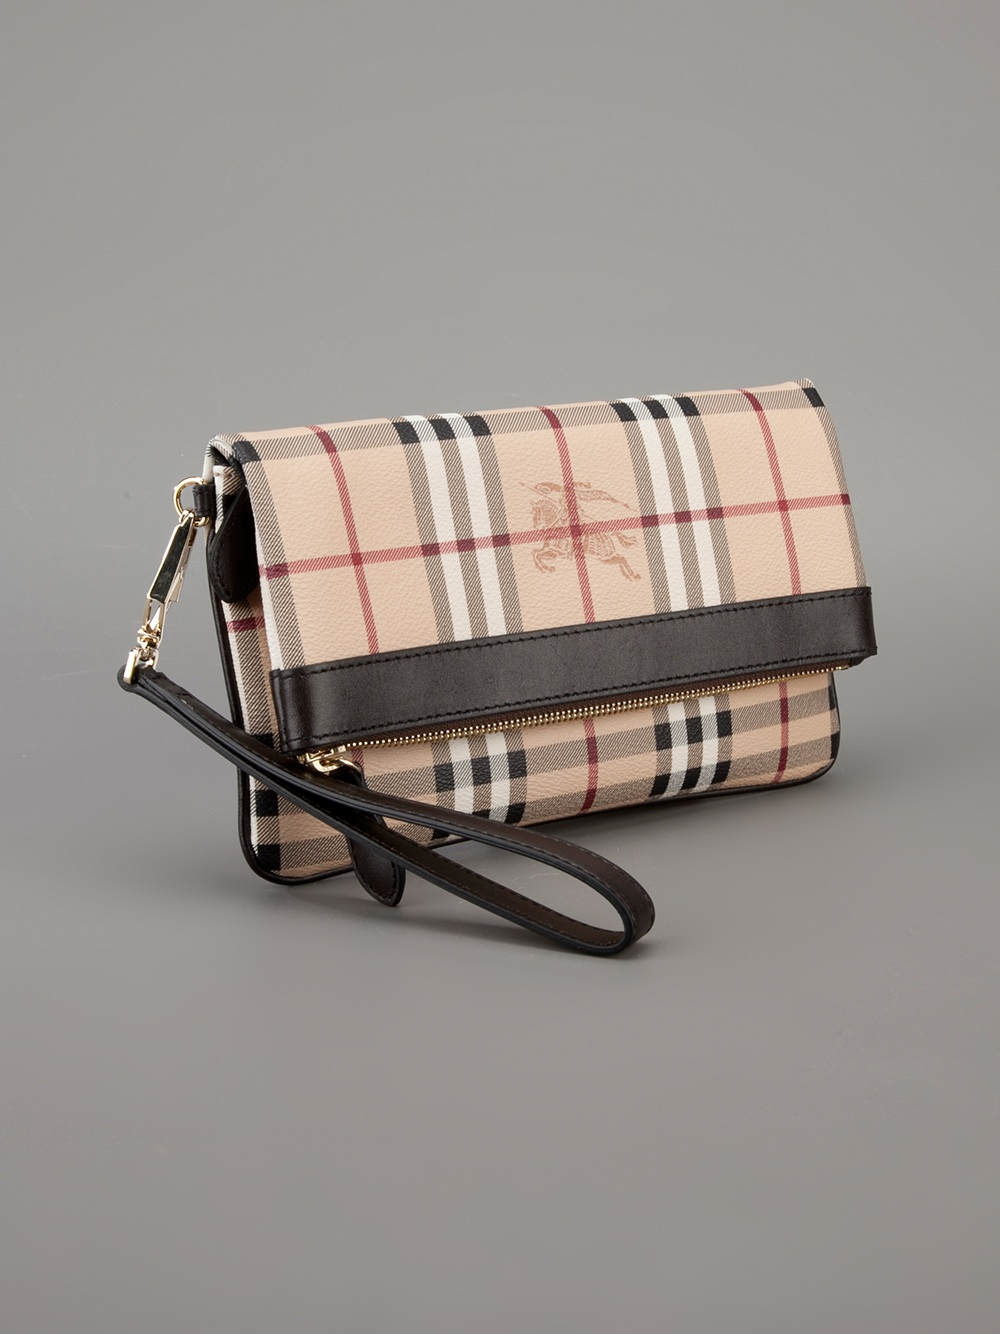 fb24176c9089 Burberry Adeline Clutch in Natural - Lyst